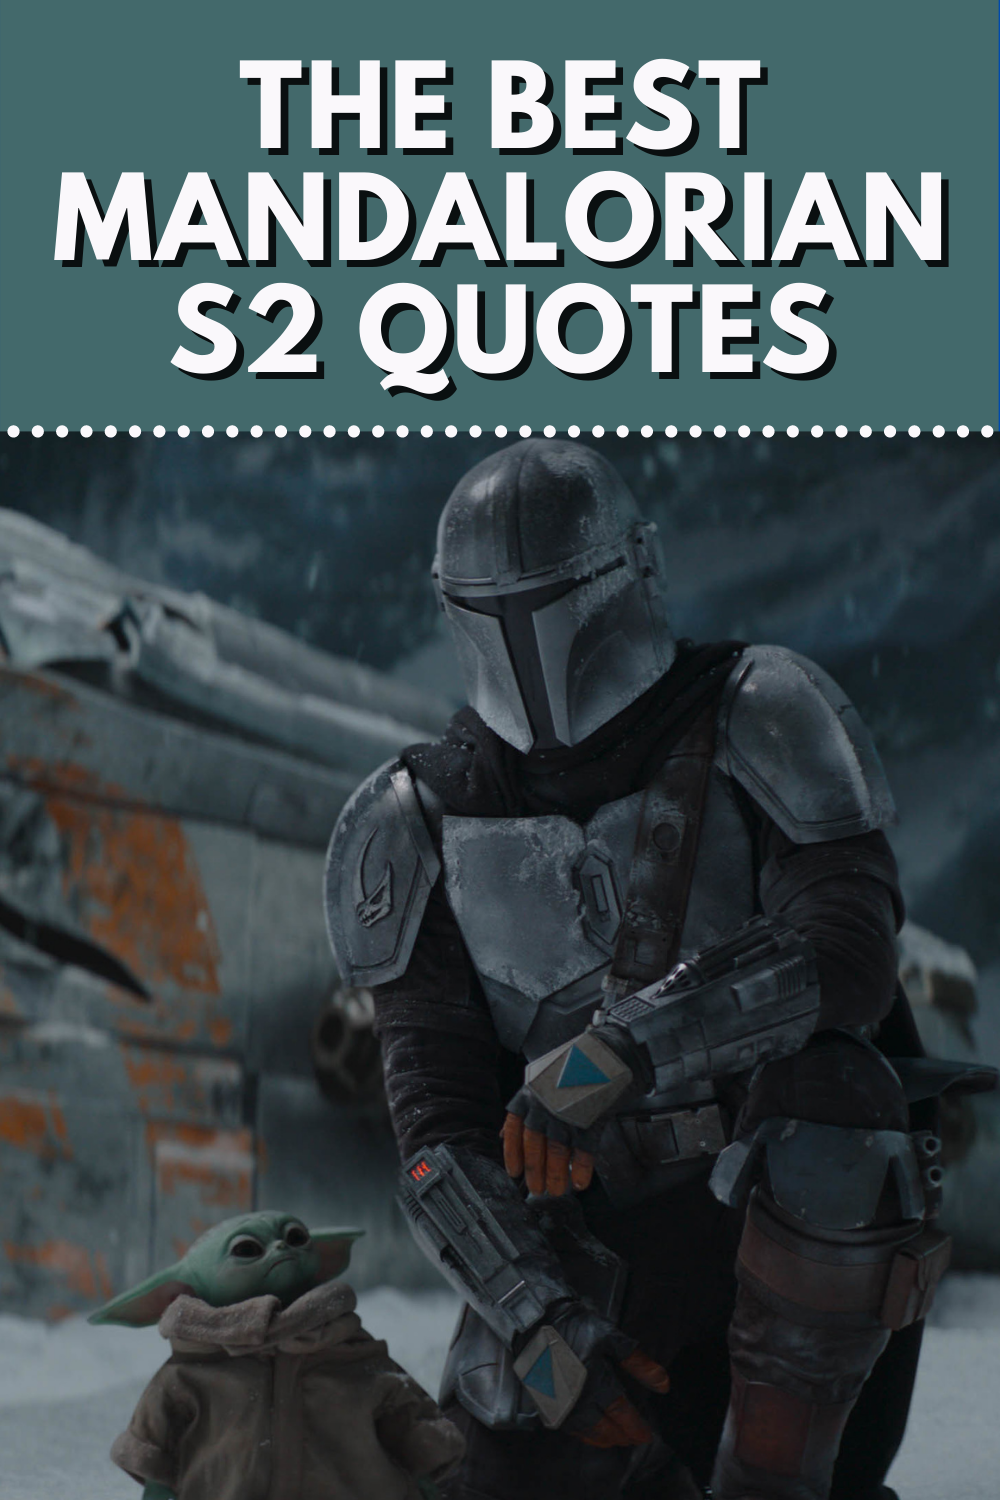 The Best Mandalorian Quotes From Season 2 Popcorner Reviews They reproduce at a staggering rate and are known to stalk urban alleyways and remote. the best mandalorian quotes from season